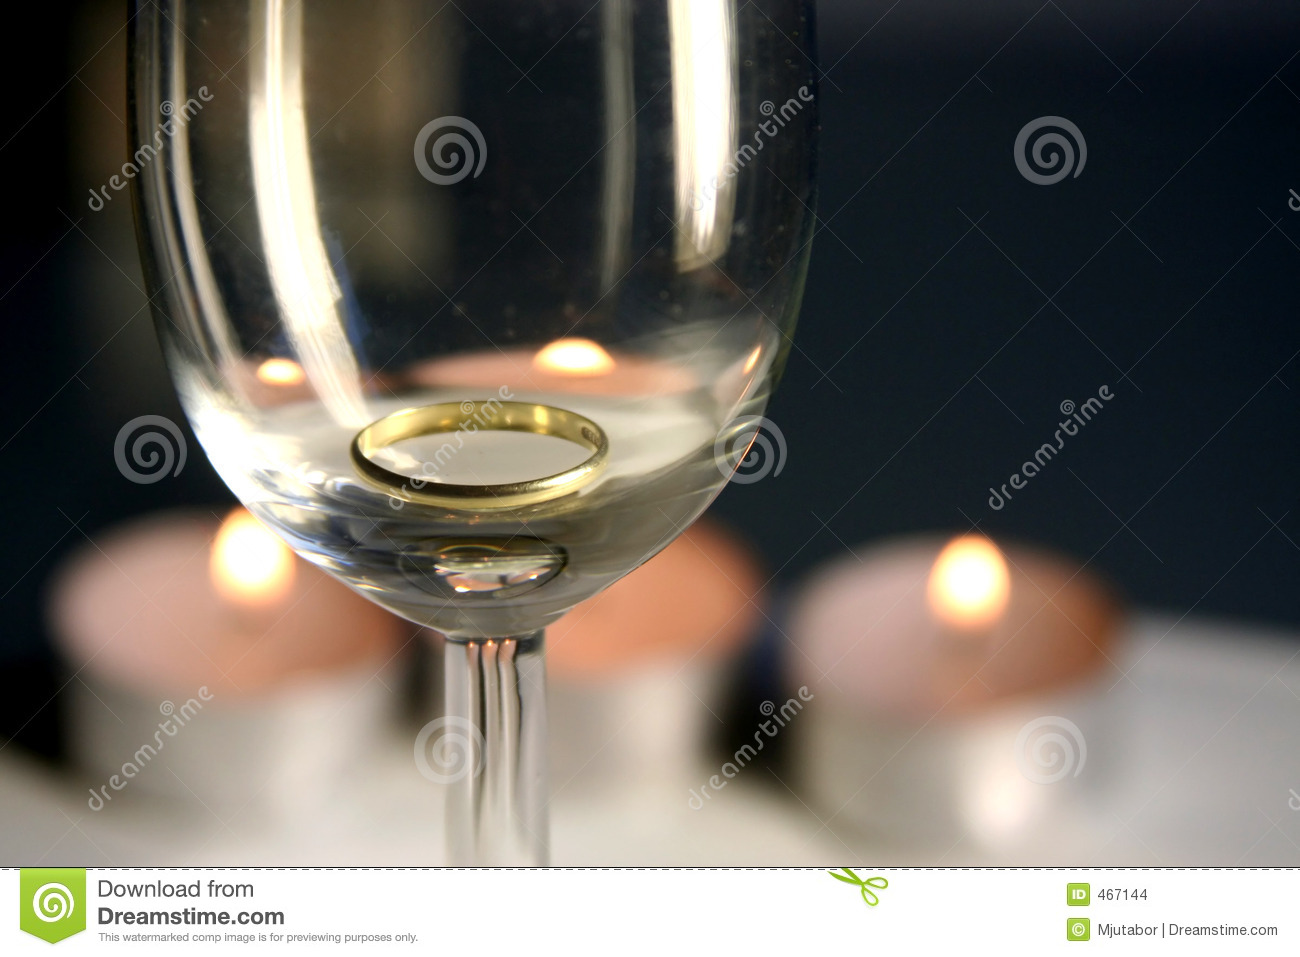 Download Valentine's dinner stock photo. Image of glass, admire - 467144